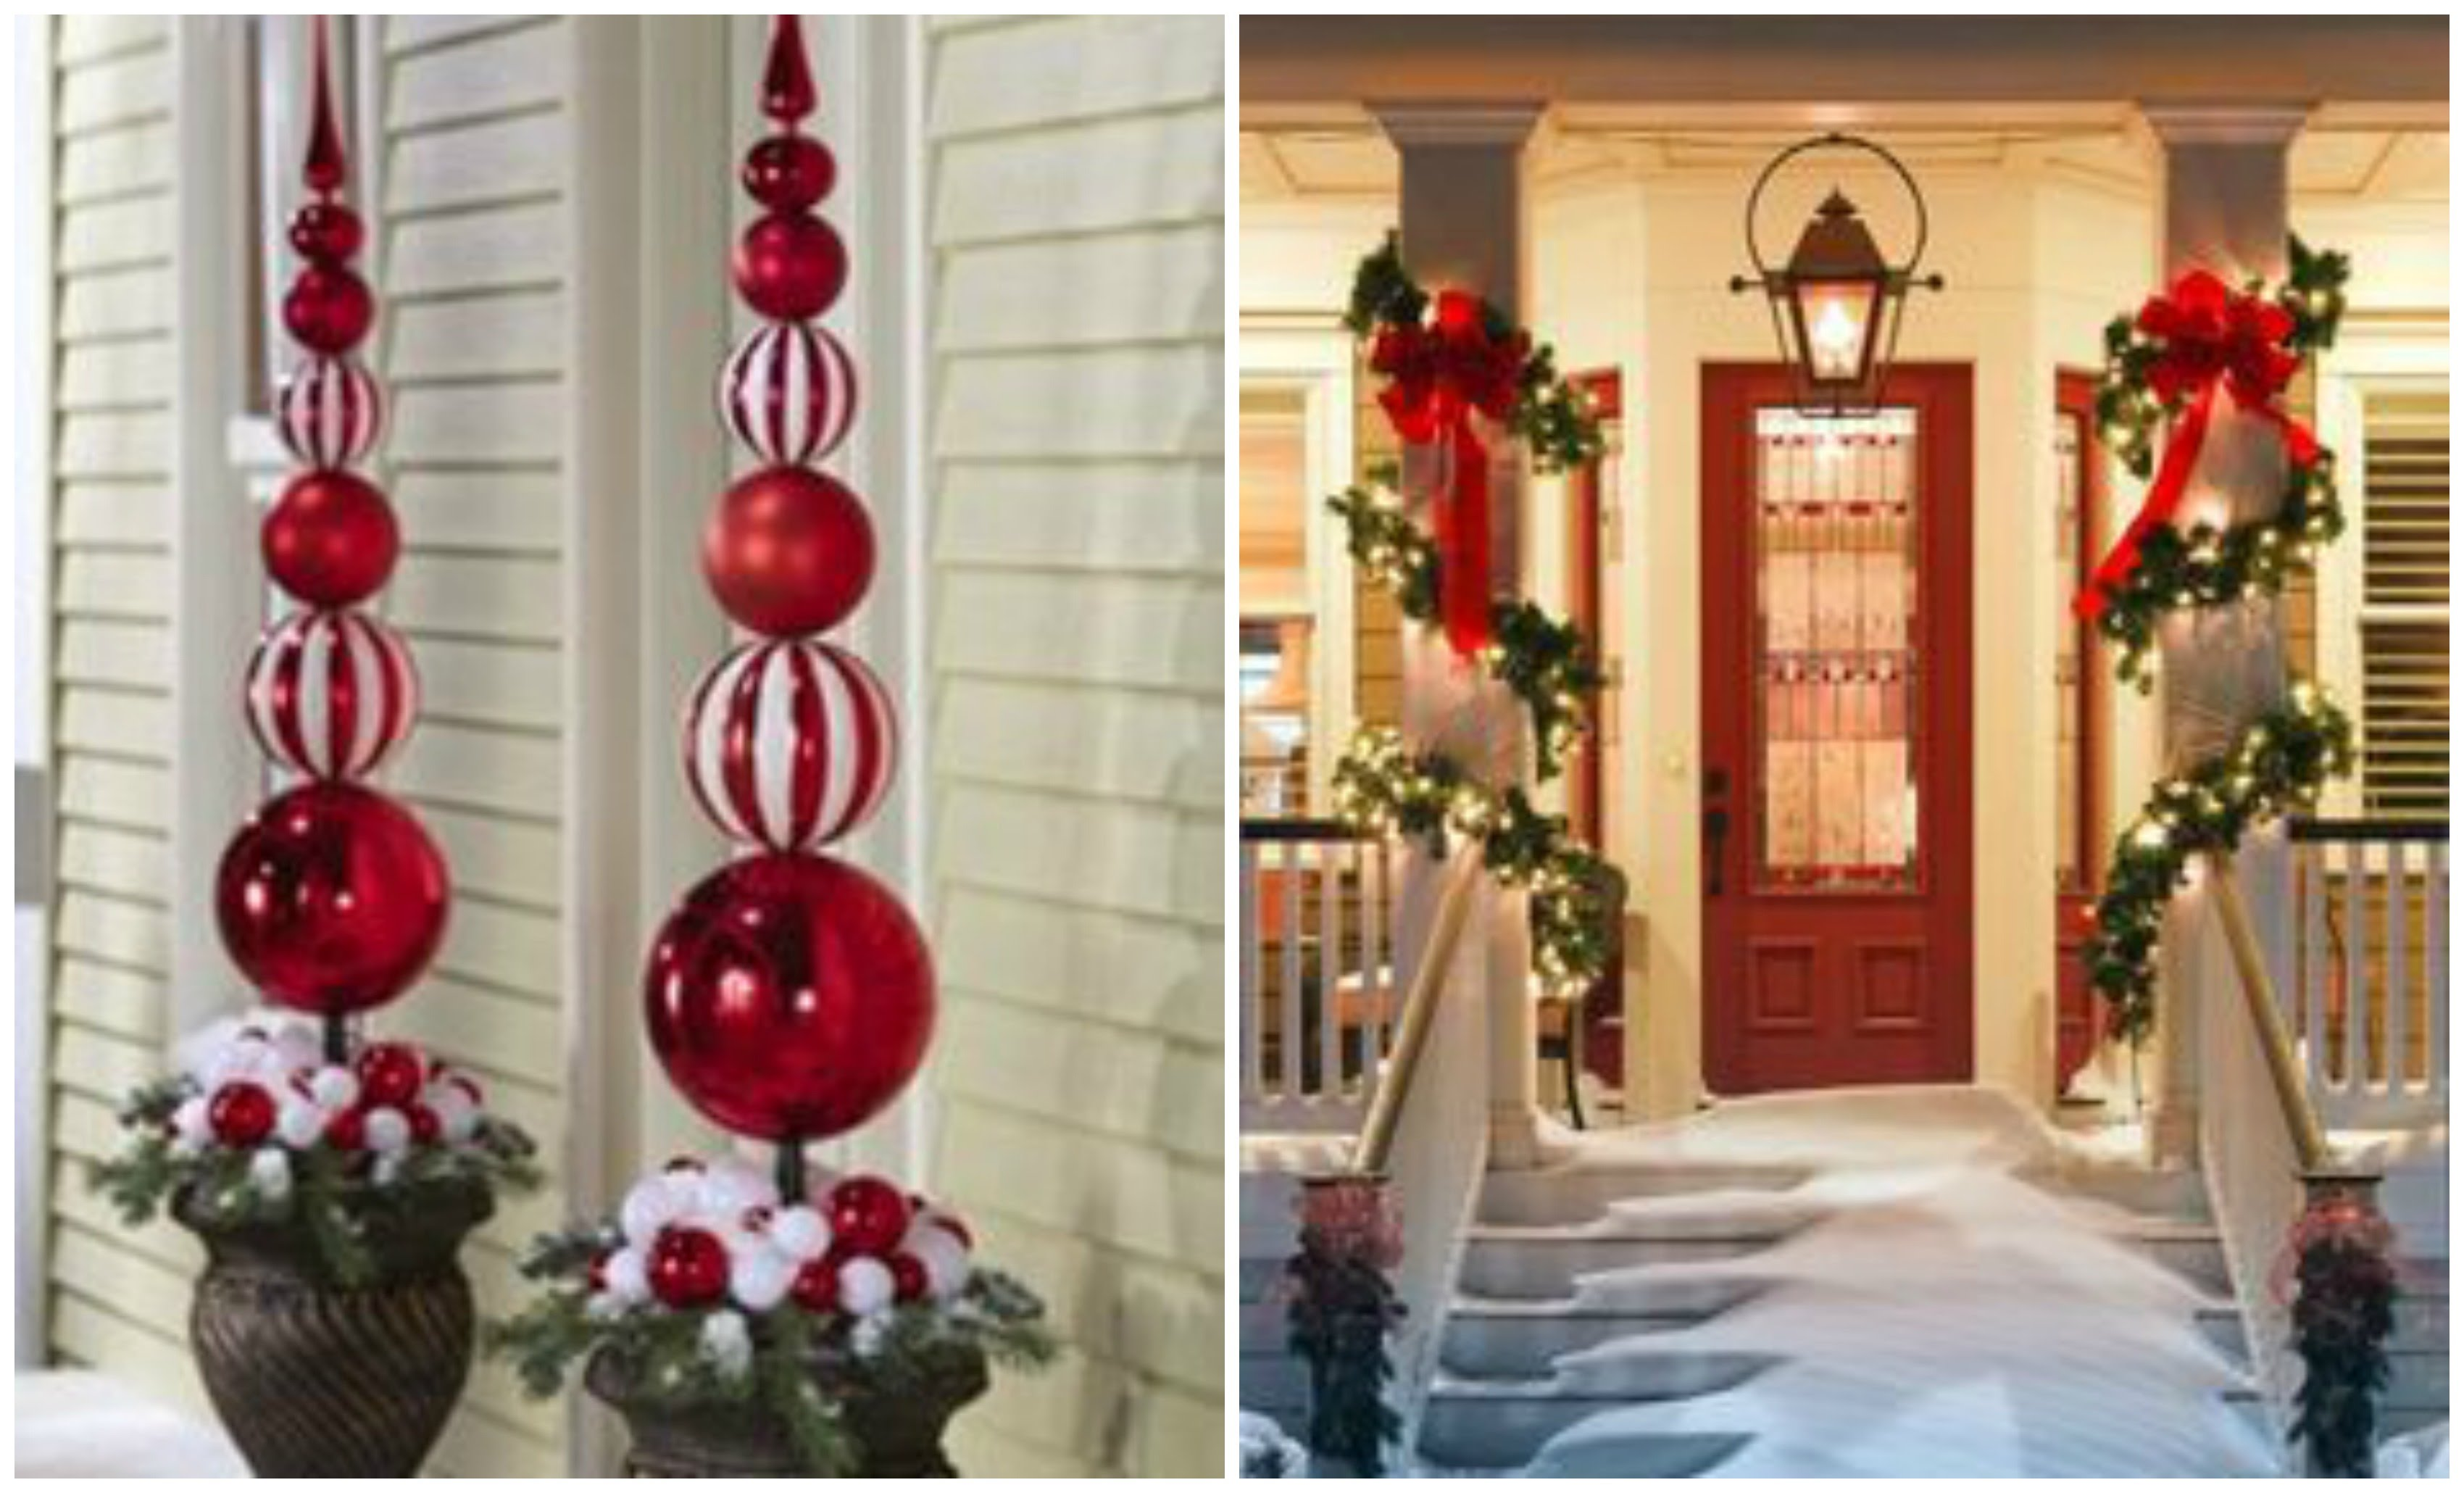 Decor Ideas For Festive Season You Must Be Aware Of Live